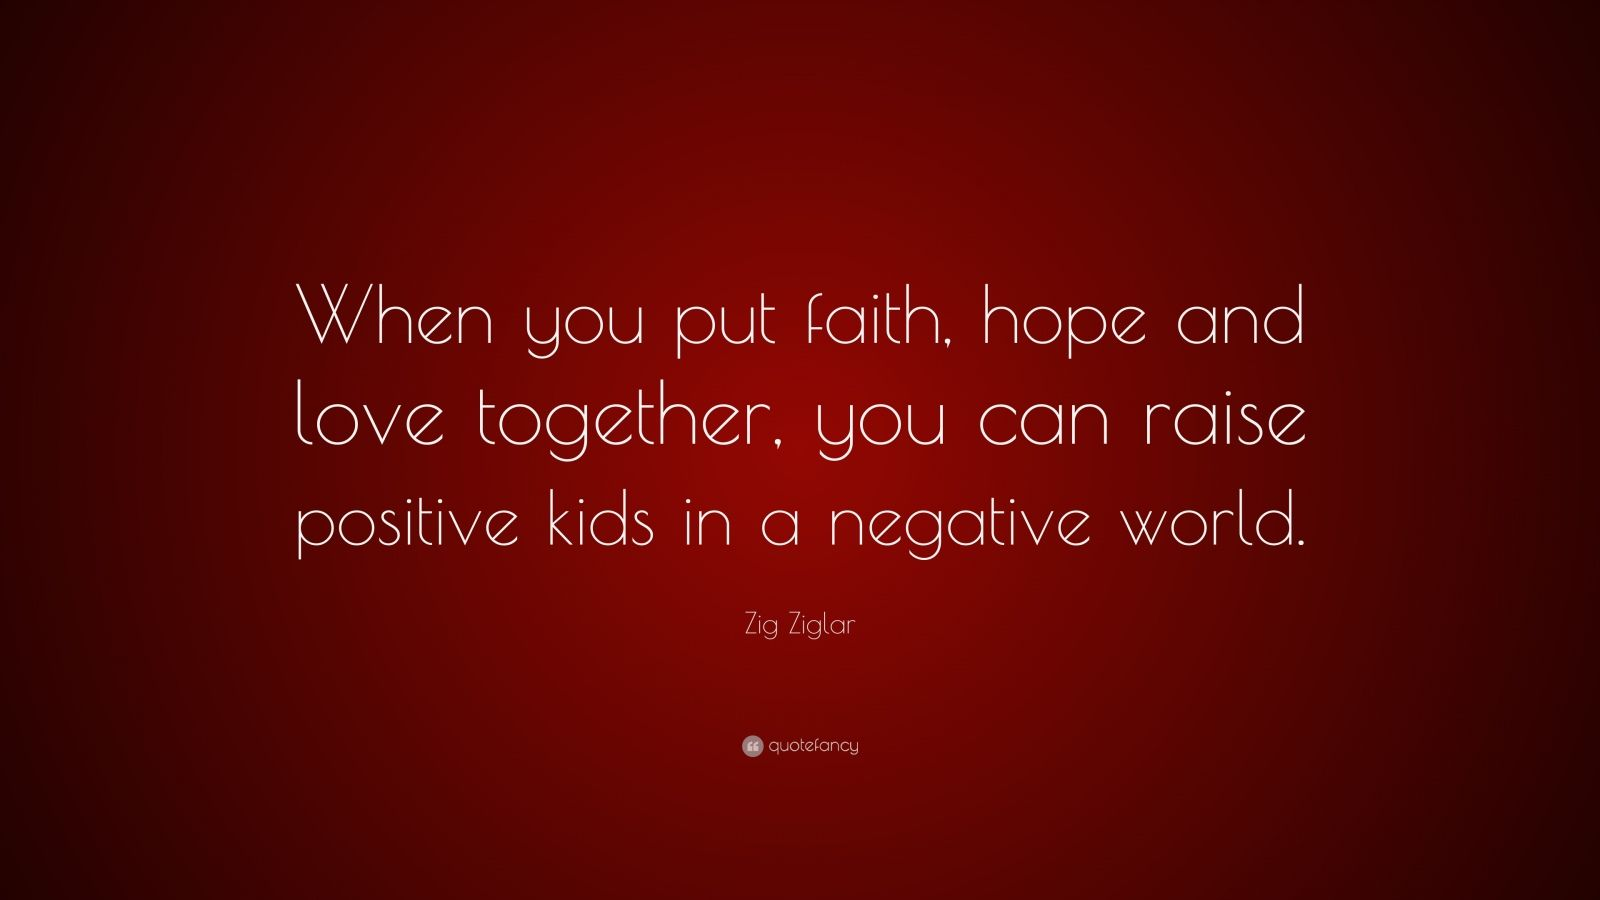 """Zig Ziglar Quote: """"When you put faith, hope and love together, you can raise positive kids in a negative world."""""""